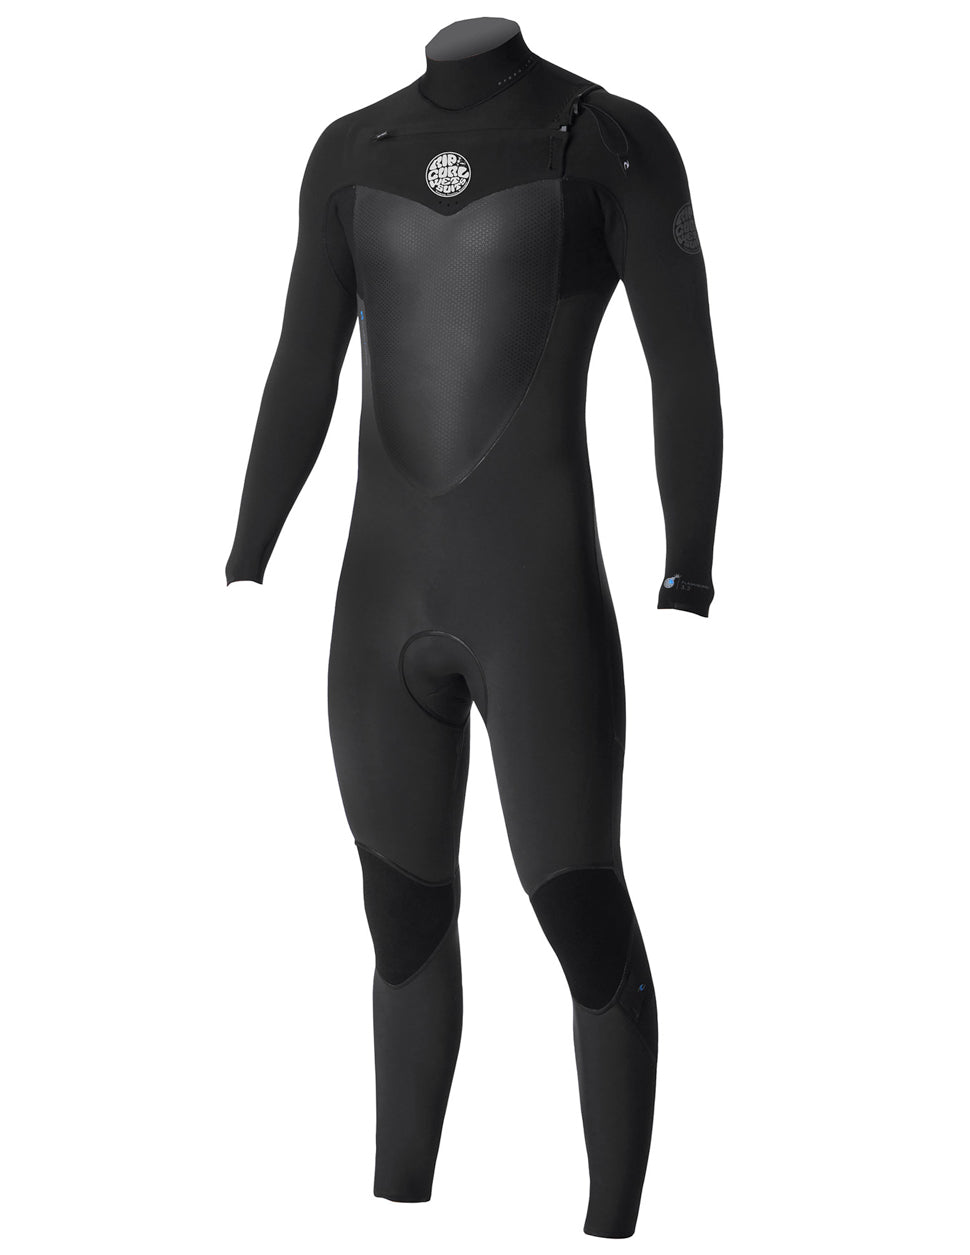 Rip Curl Flashbomb 4/3 Chest Zip Wetsuit